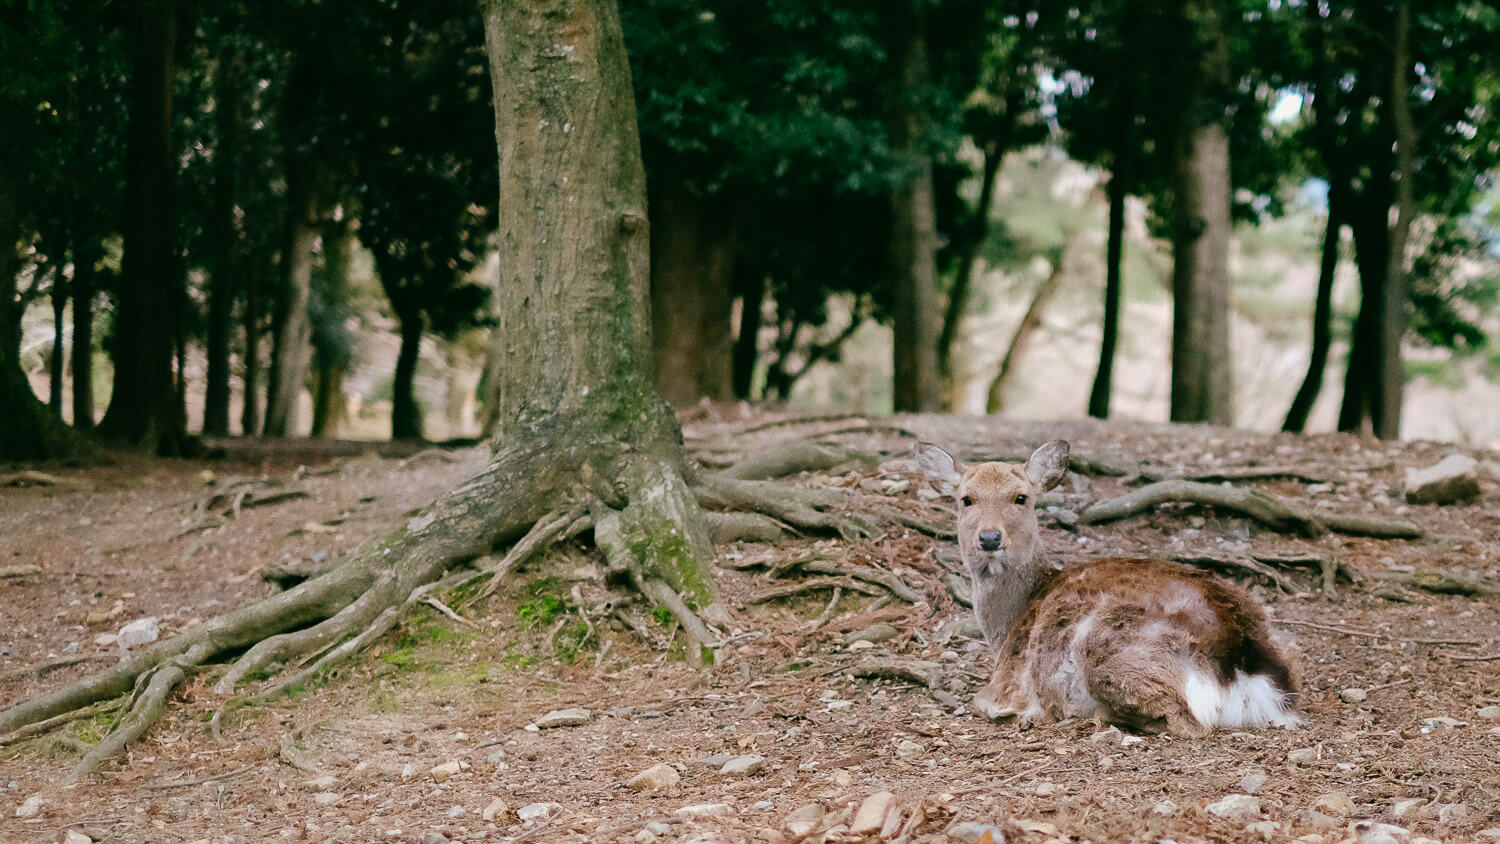 """A deer relaxing in Nara. Travel photography and guide by © Natasha Lequepeys for """"And Then I Met Yoko"""". #japan #japanitinerary #travelblog #fujifilm #asia"""